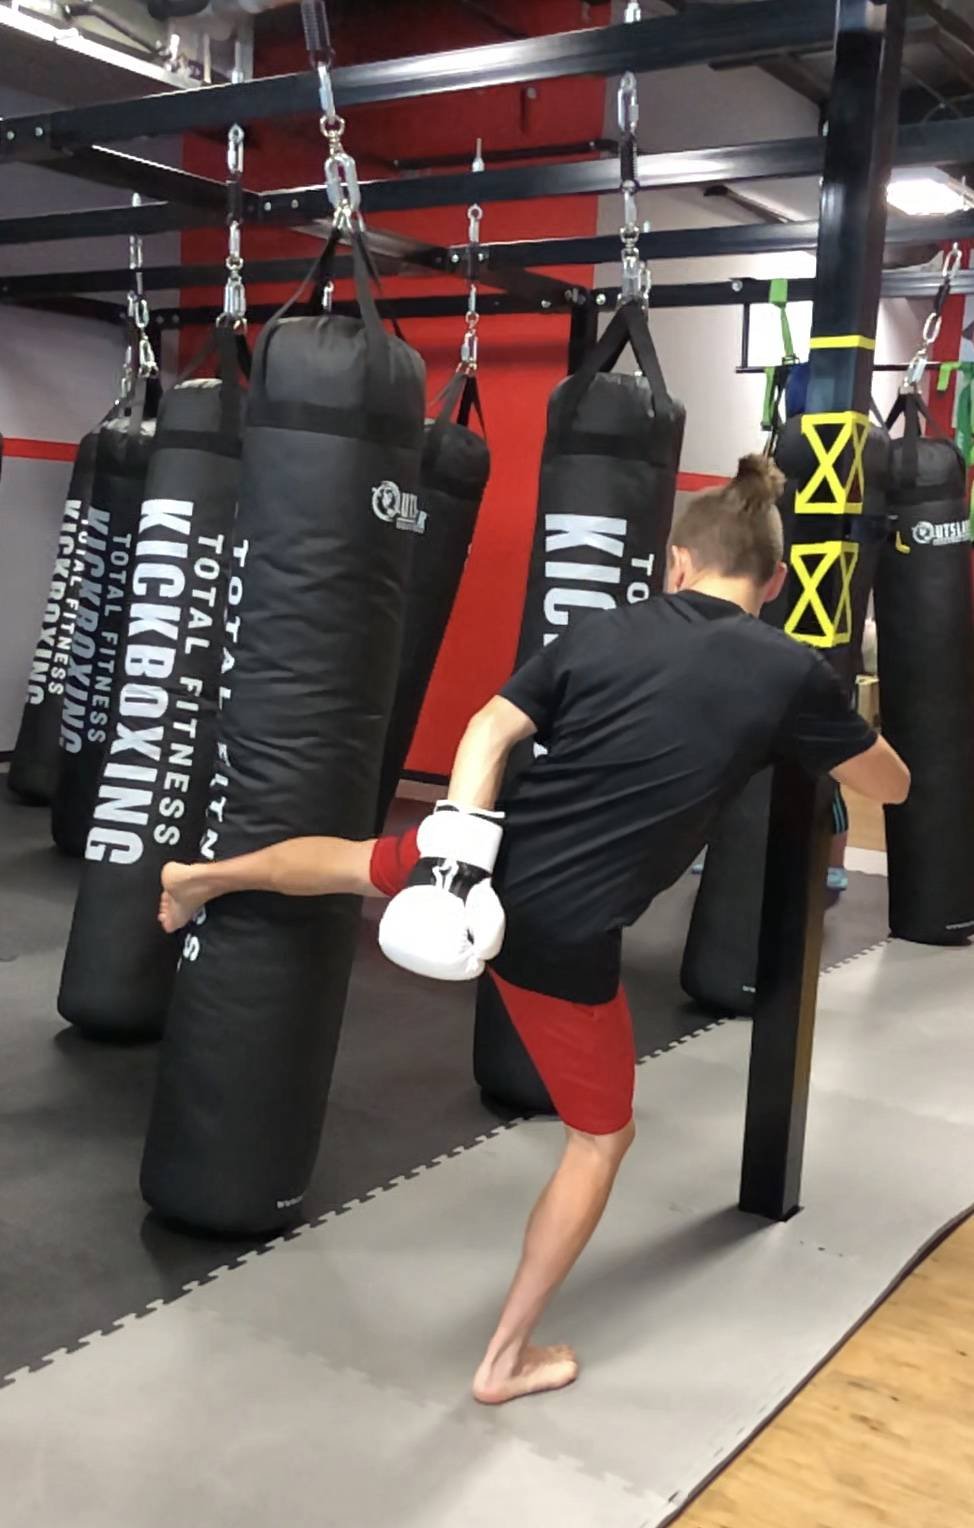 Total Fitness Kickboxing - South Austin, TX - gym  | Photo 1 of 8 | Address: 3601 W William Cannon Dr # 225, Austin, TX 78749, USA | Phone: (512) 470-5277